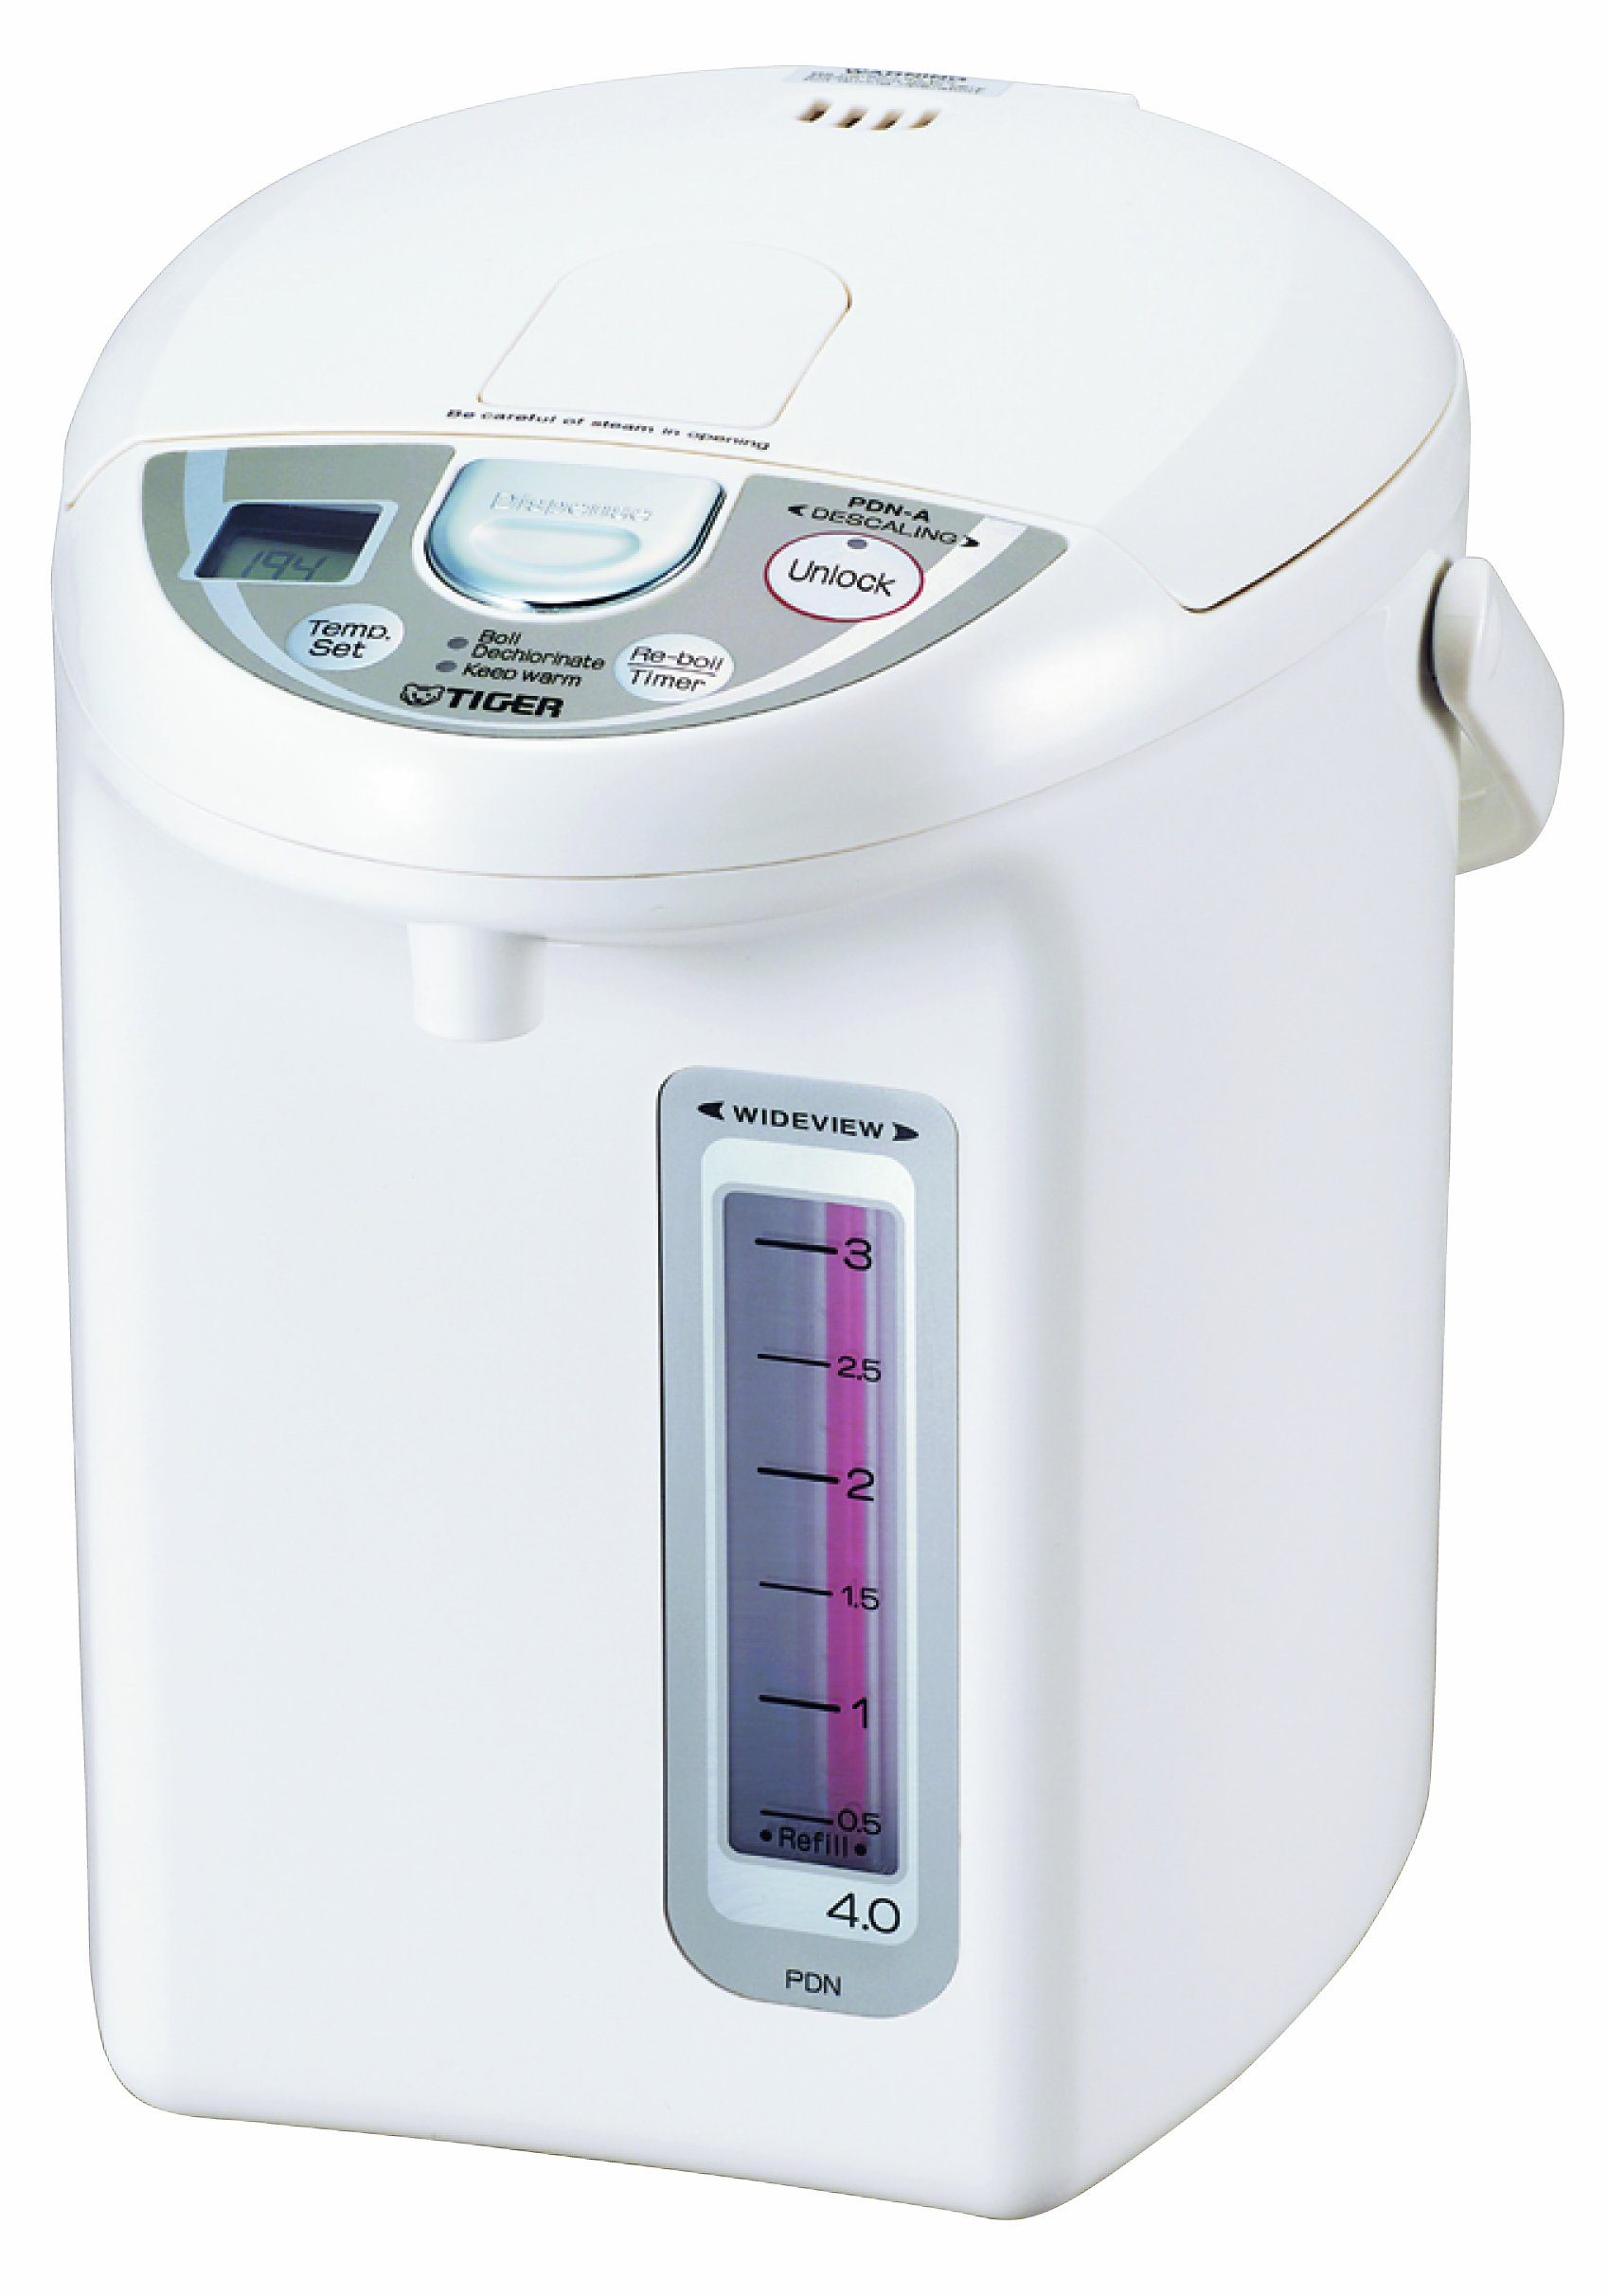 Tiger PDN-A40U-W Electric Water Boiler and Warmer, White, 4.0-Liter by Tiger Corporation